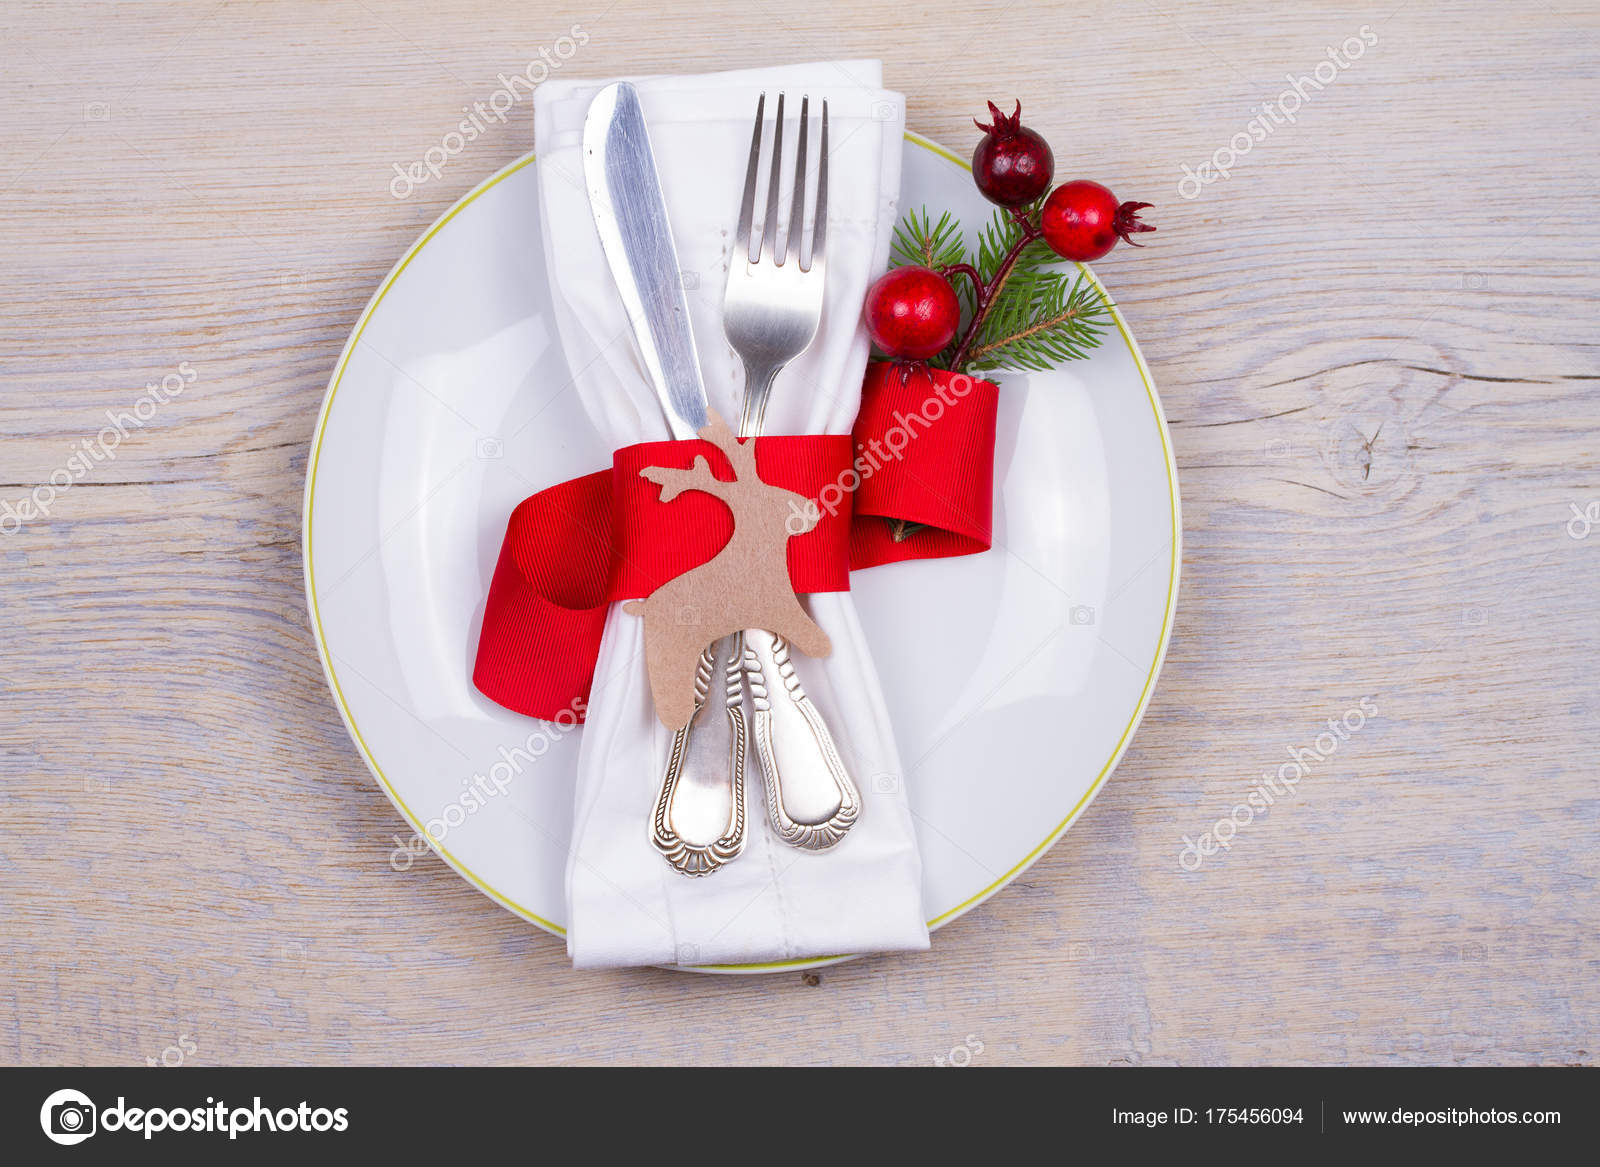 Christmas table setting with plate cutlery and red ribbon. Winter holidays and festive background. Christmas eve dinner New Year food lunch. & Christmas Table Setting Plate Cutlery Red Ribbon Winter Holidays ...